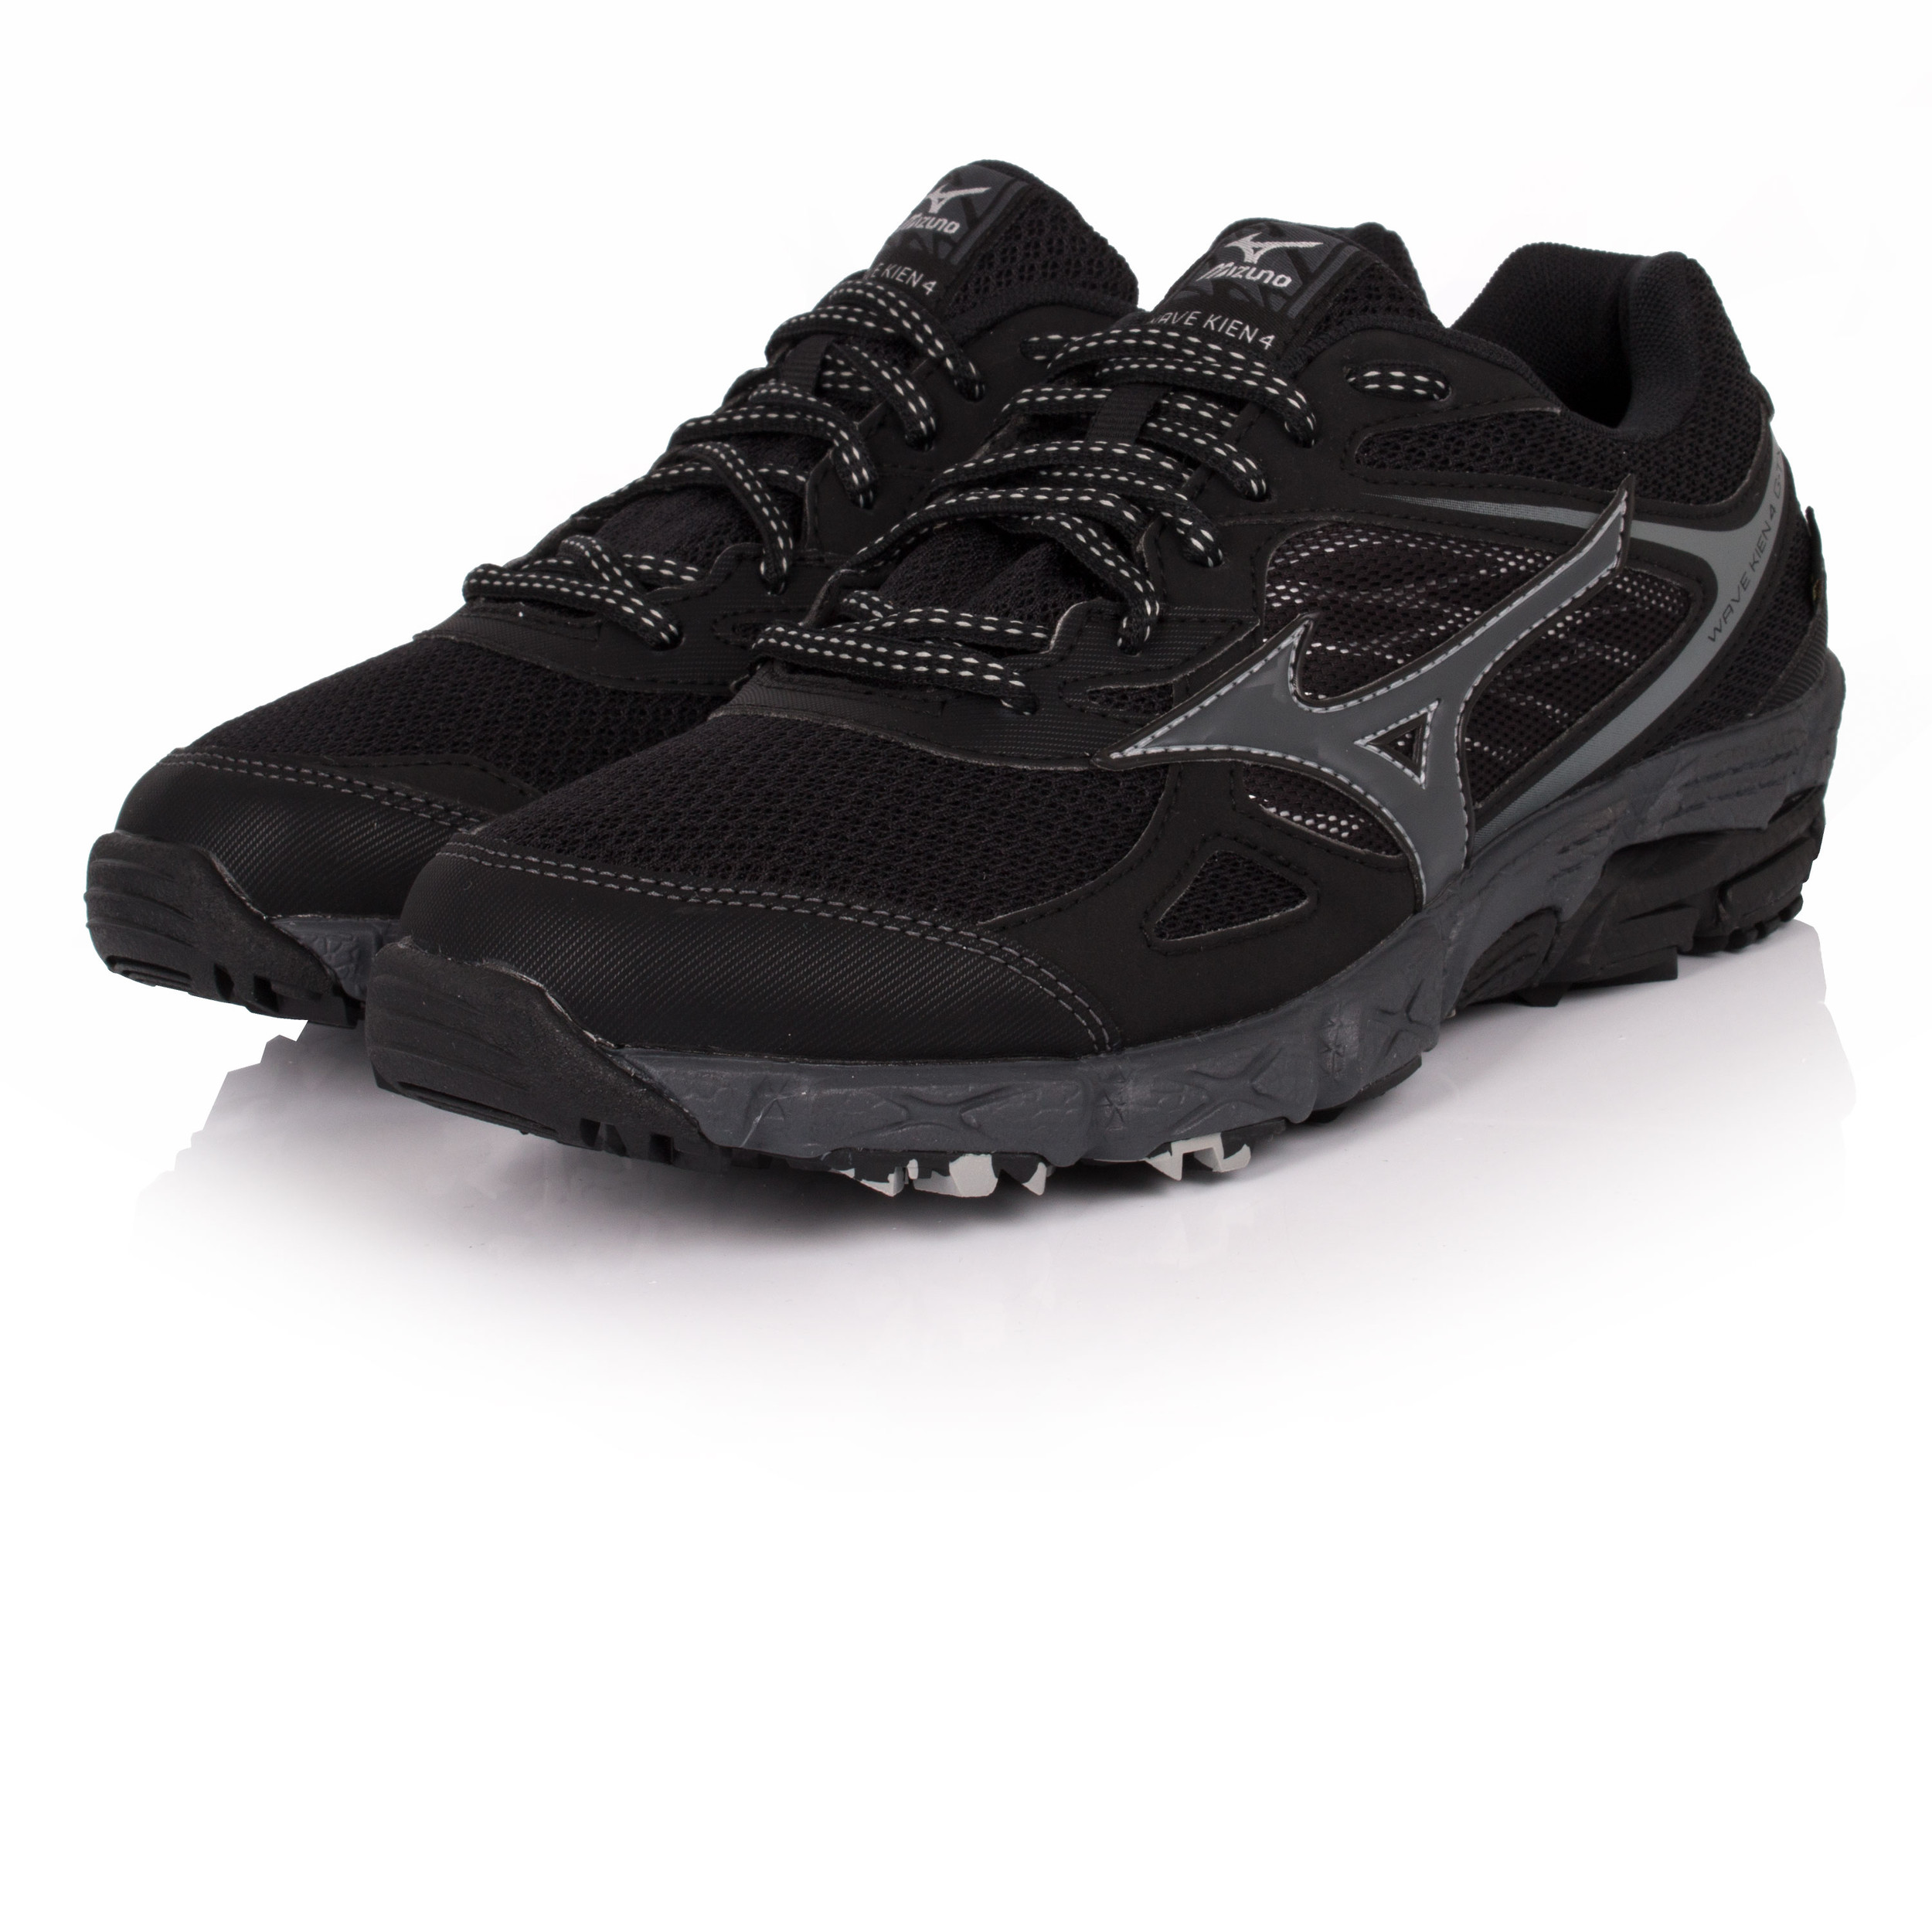 mizuno wave kien 4 mens black gore tex trail running sports shoes trainers ebay. Black Bedroom Furniture Sets. Home Design Ideas